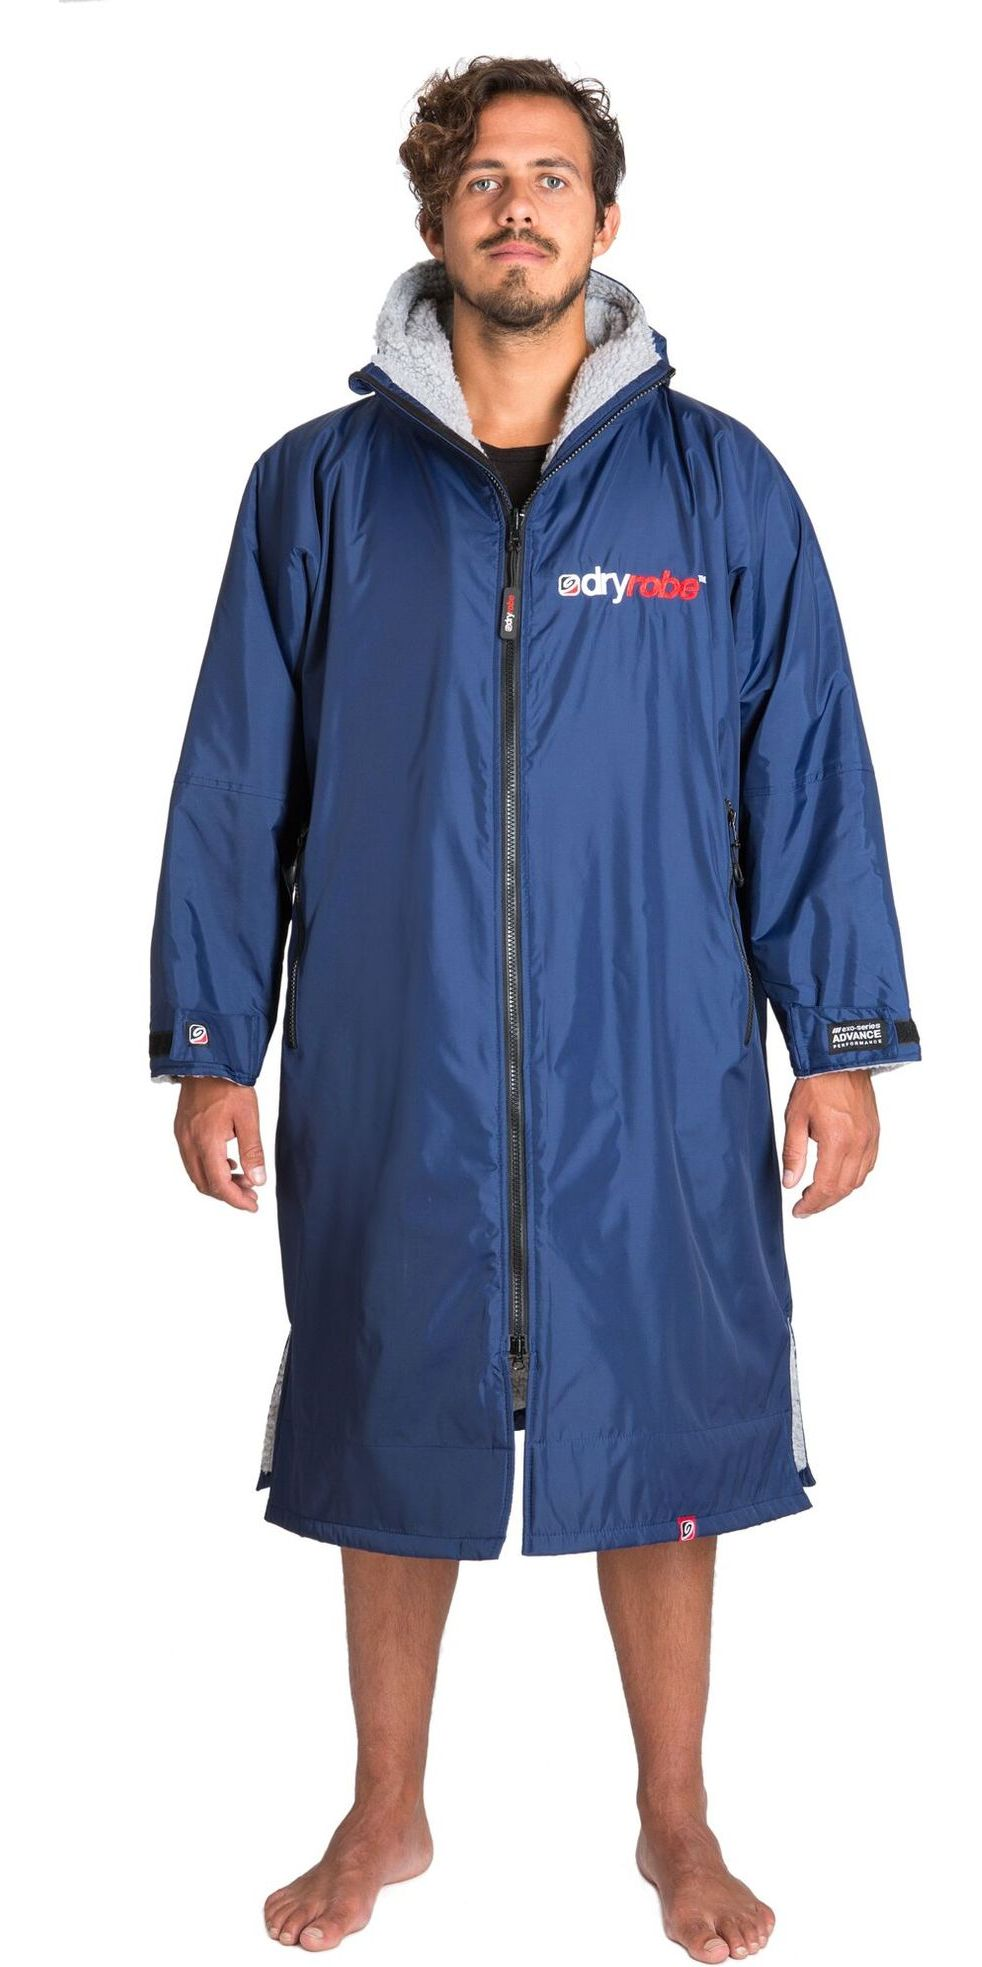 2019 Dryrobe Advance Long Sleeve Premium Outdoor Change Robe DR104 Navy / GREY